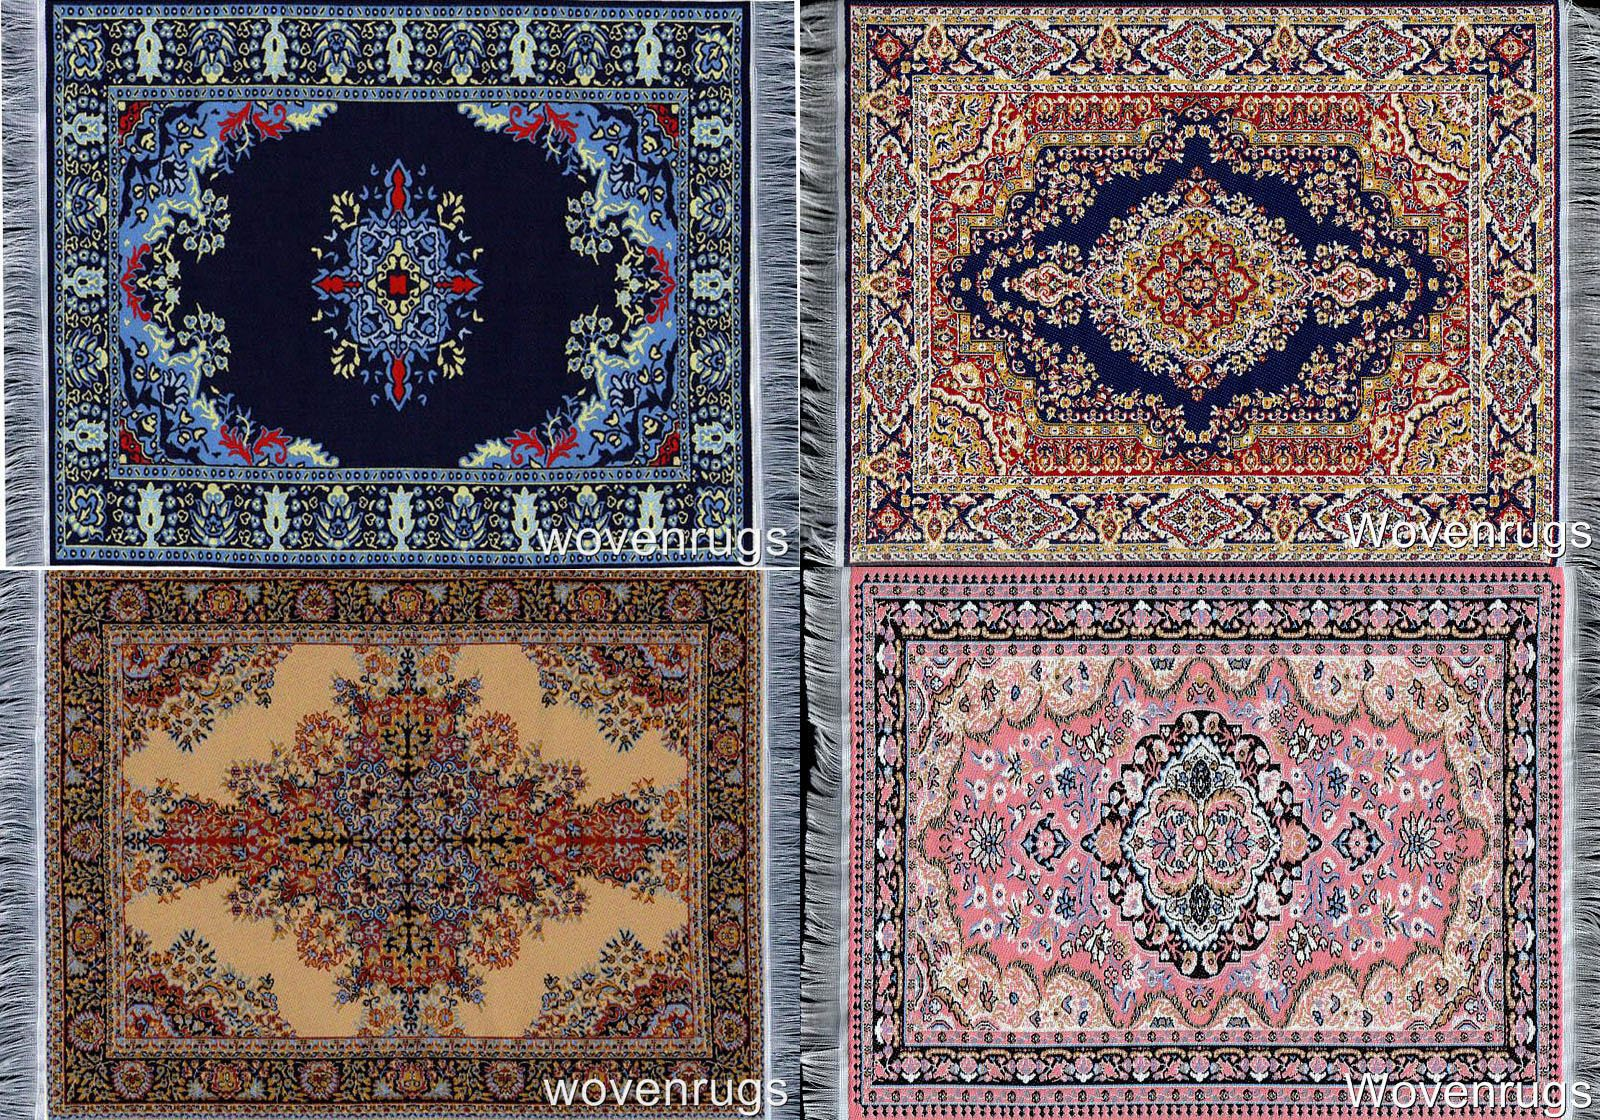 Inusitus Set of Miniature Woven Dollhouse Carpets - Dolls House Toy Rugs - 1/12 Scale Barbie Furniture Accessories (Mix-4-1)